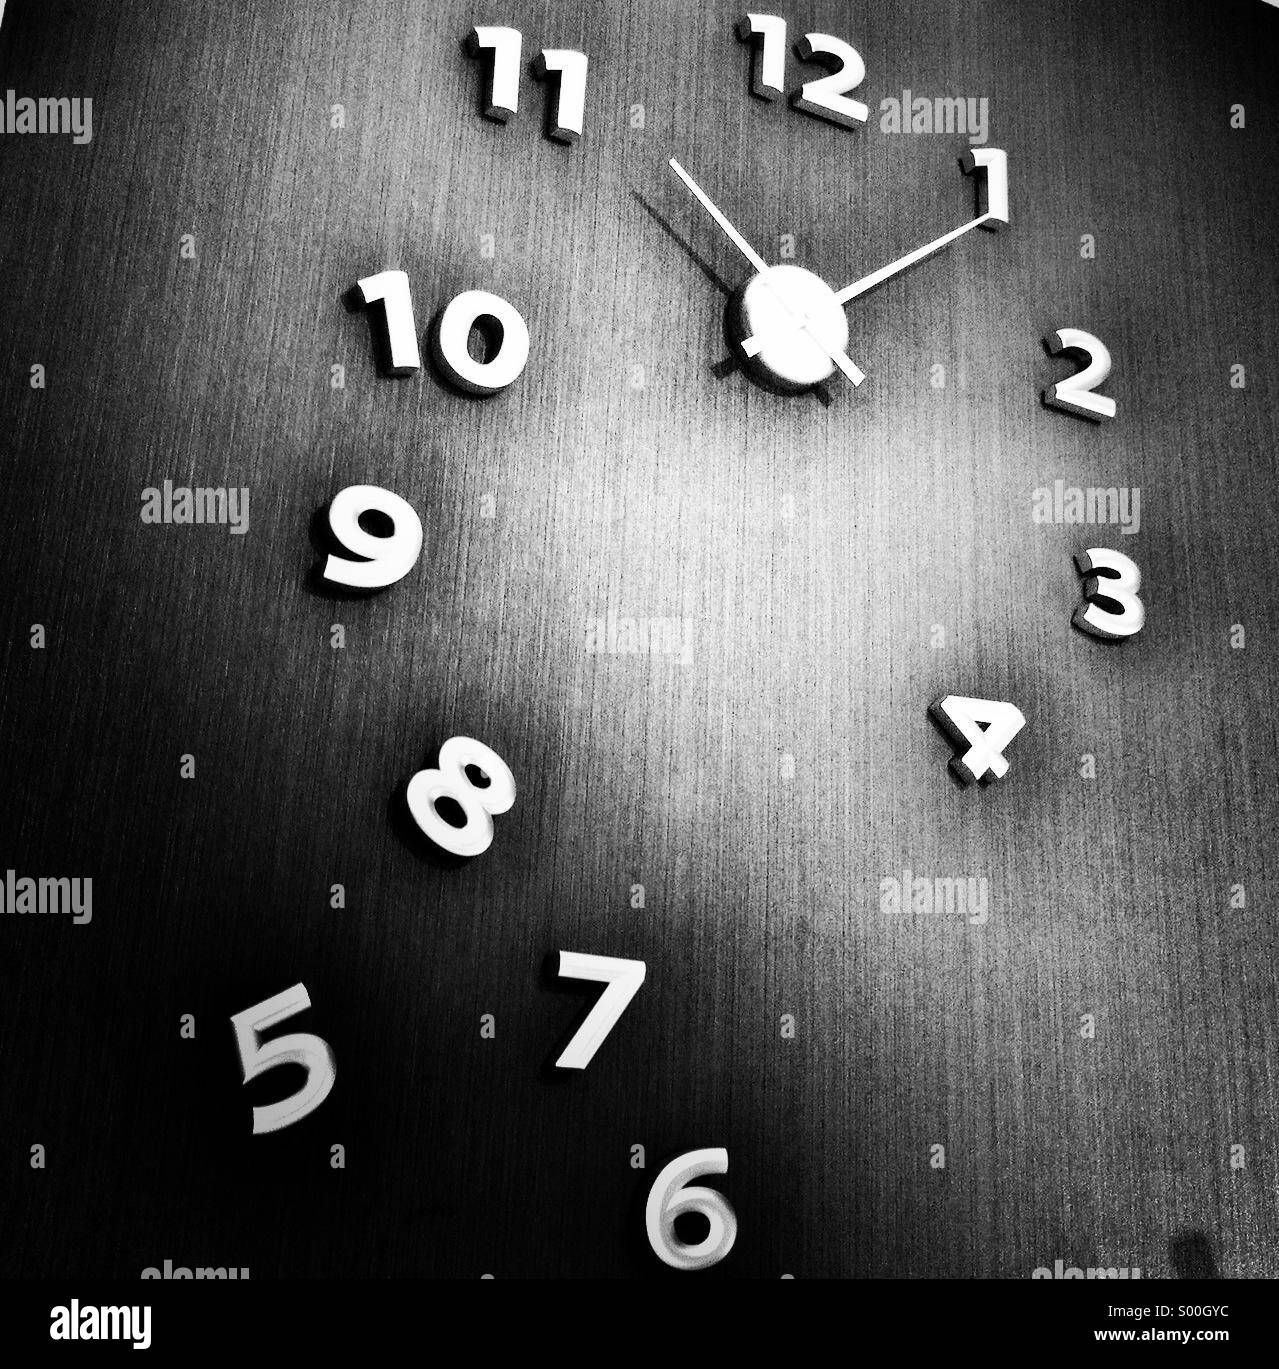 Time. Quite original clock face. B&W processing. Square format. - Stock Image